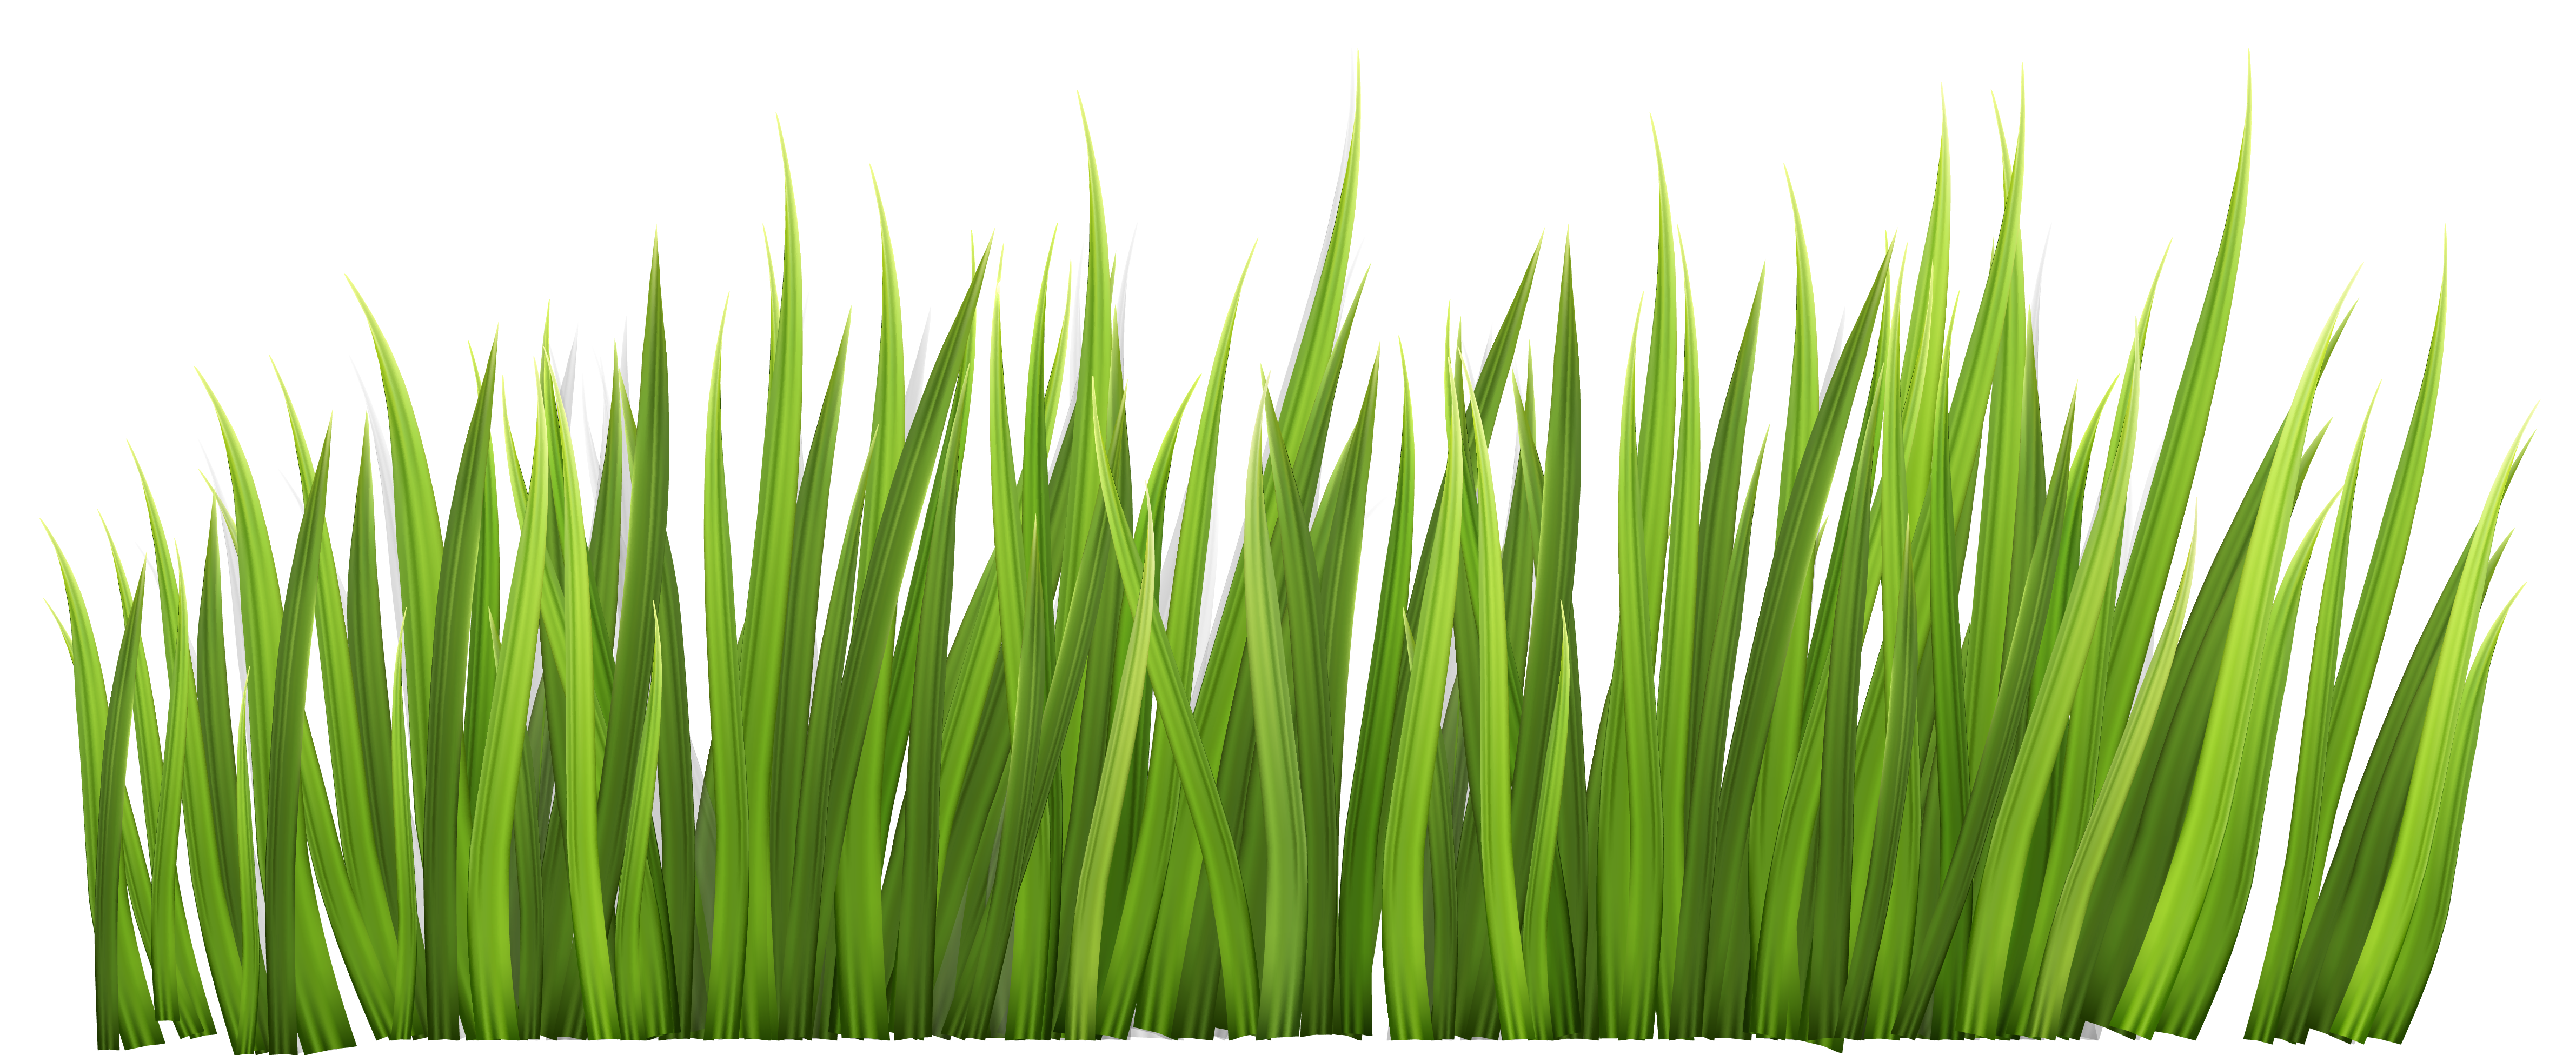 Grass decor png picture. Clipart rock vector